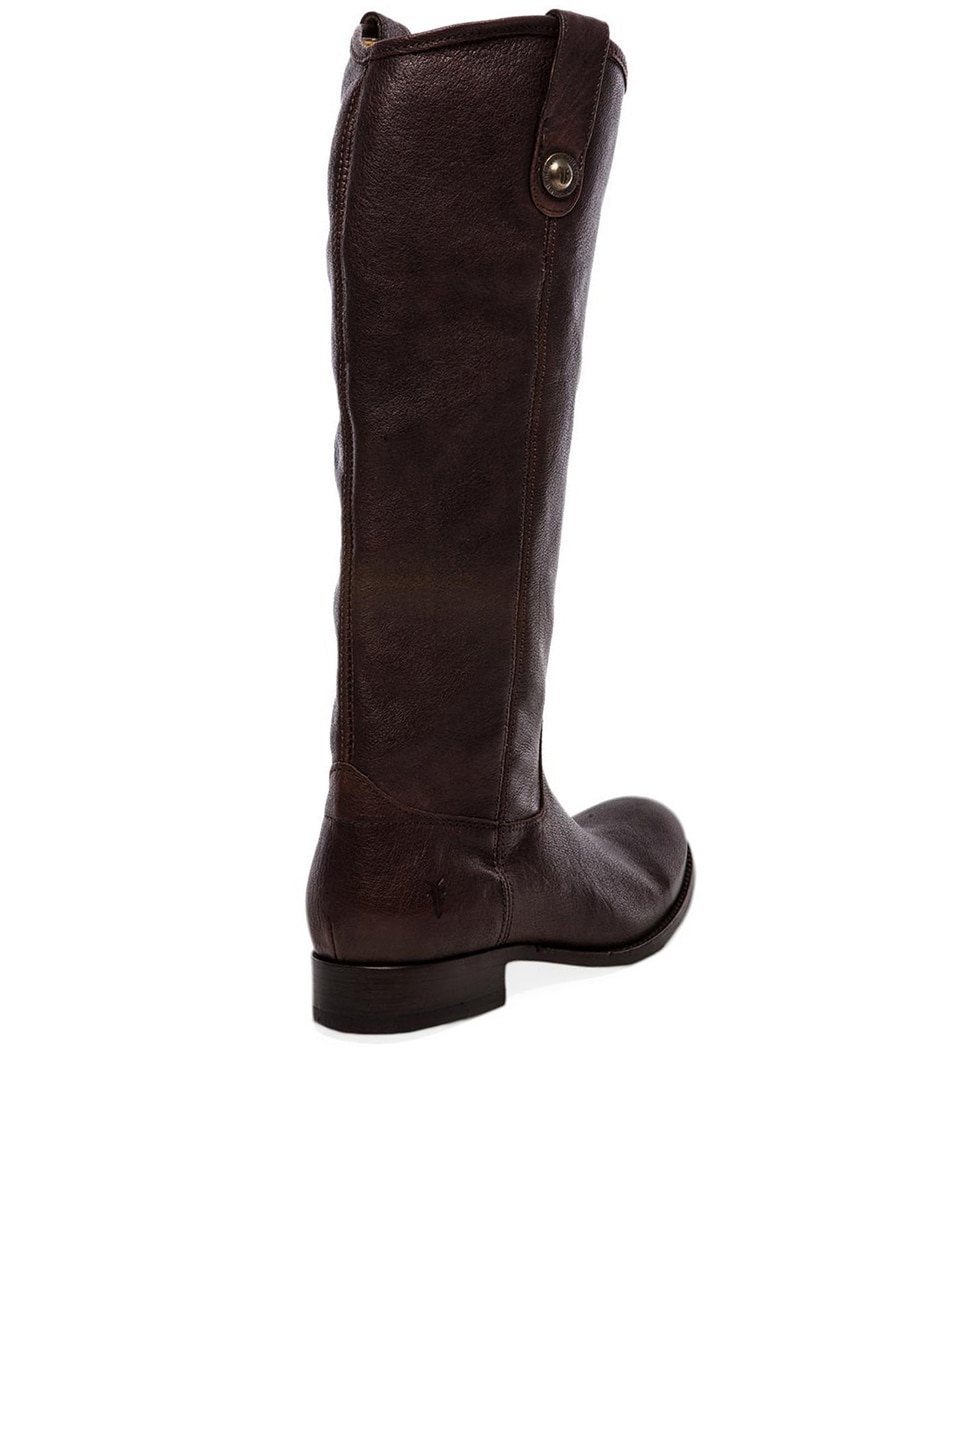 Frye Melissa Button Boot in Dark Brown